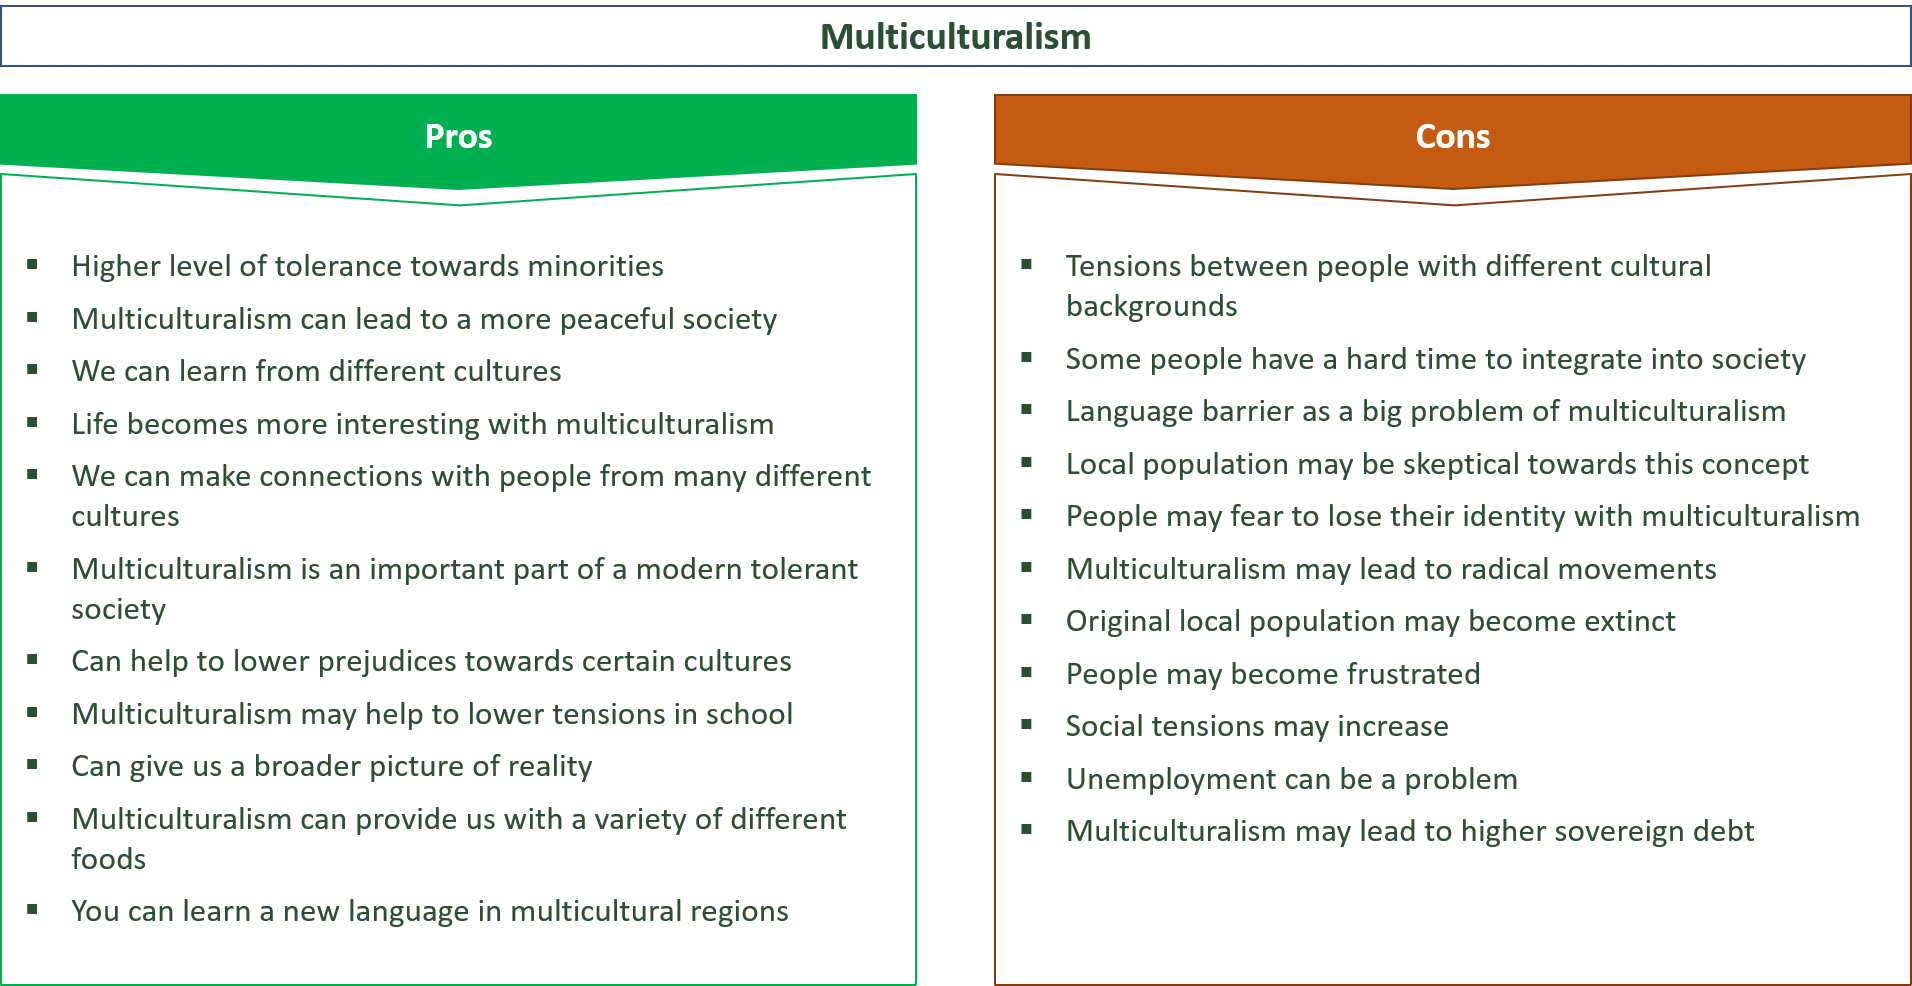 advantages and disadvantages of multiculturalism